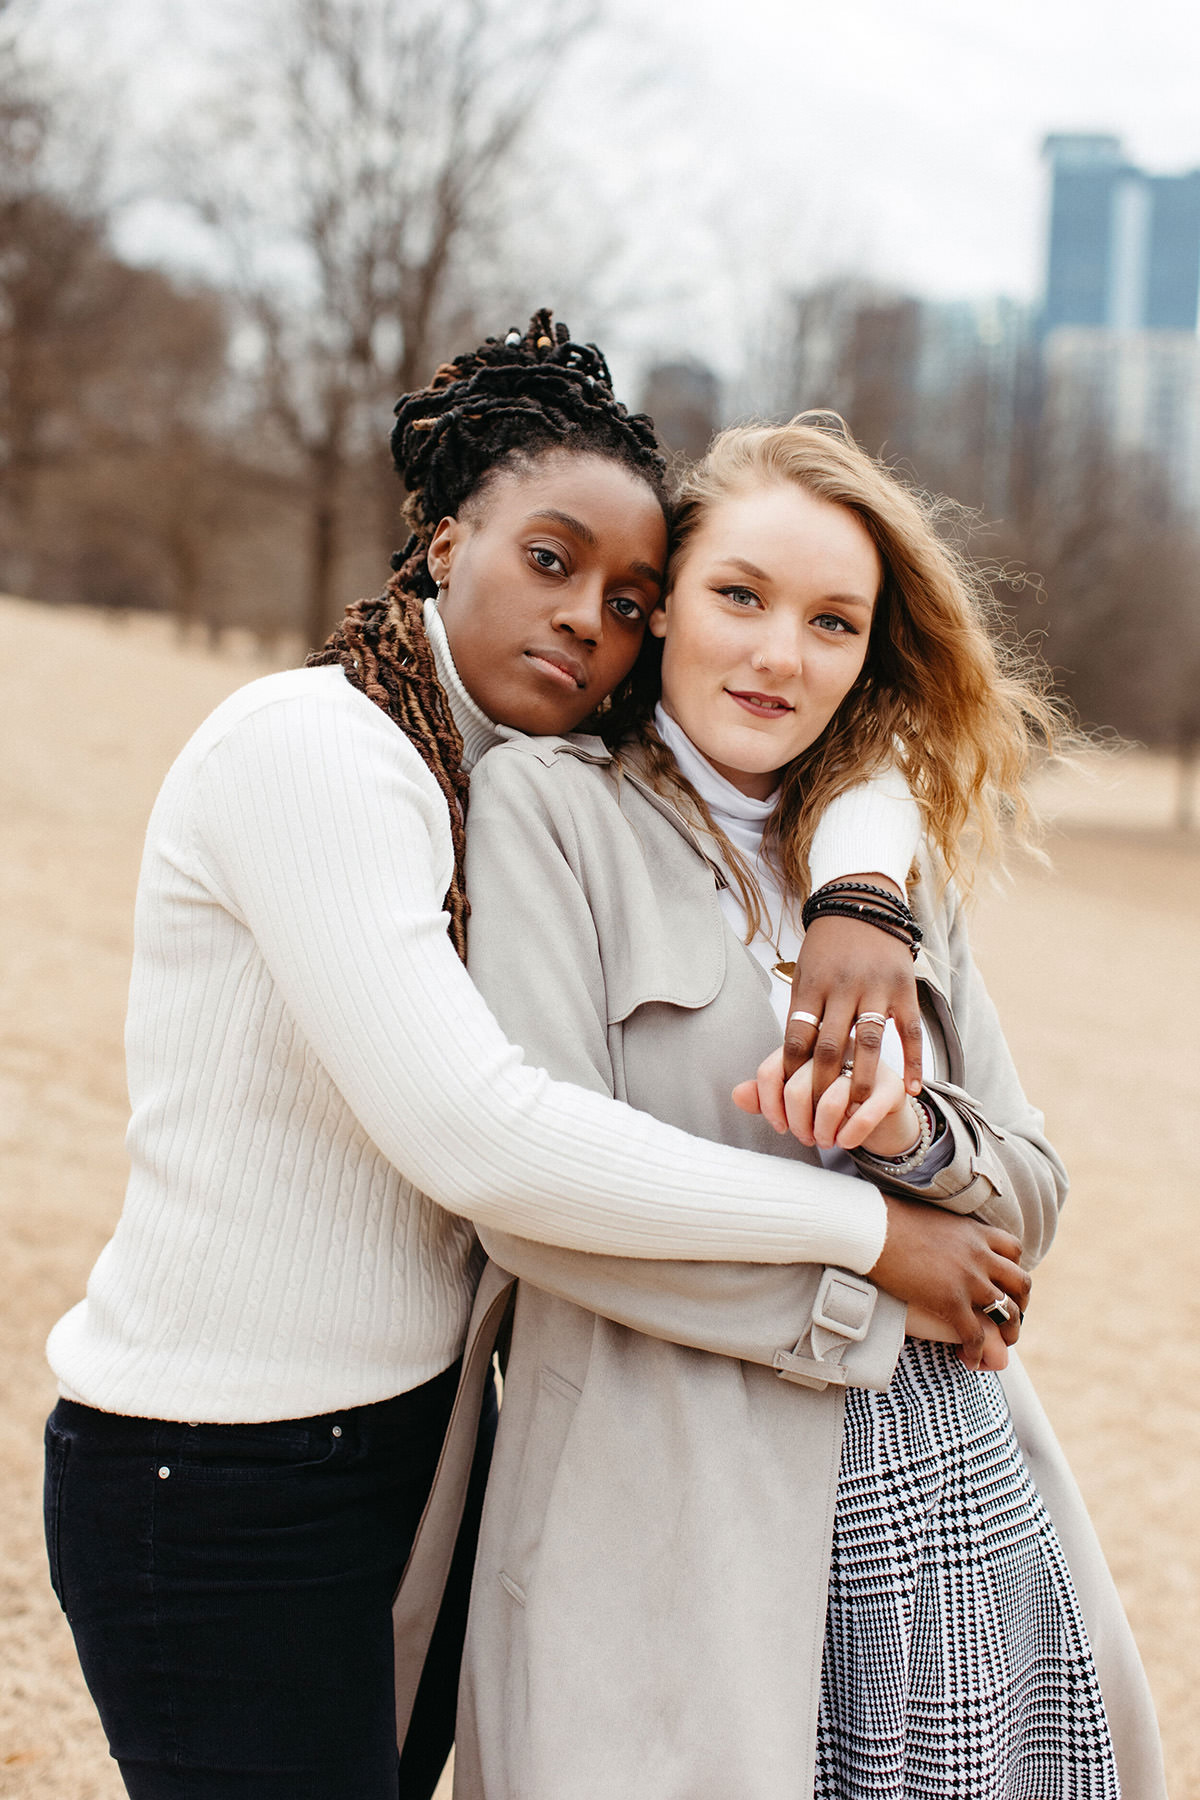 two women are embracing each other closely and are looking into the camera